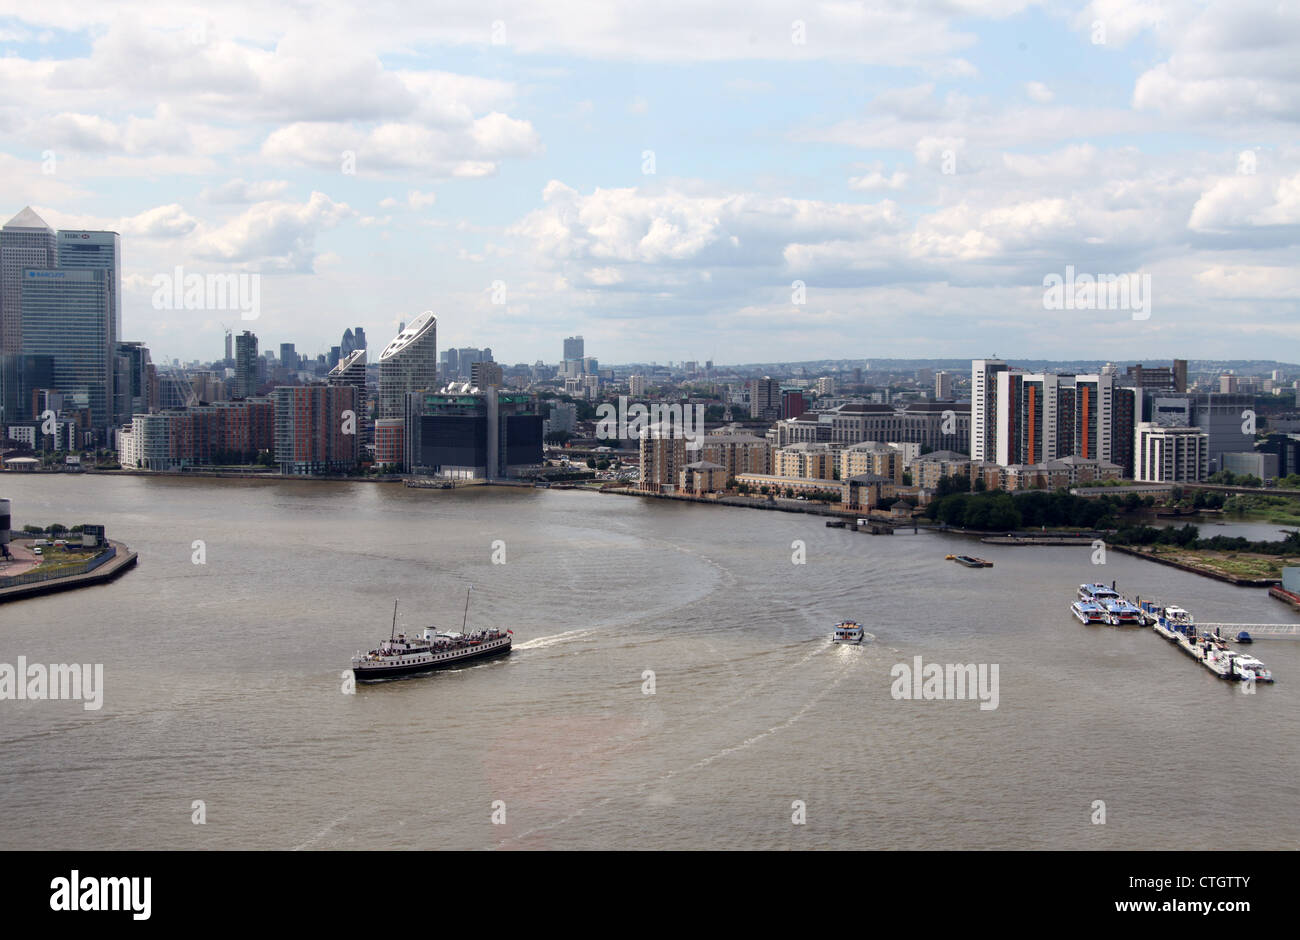 Aerial View of the River Thames from a Cable Car - Stock Image